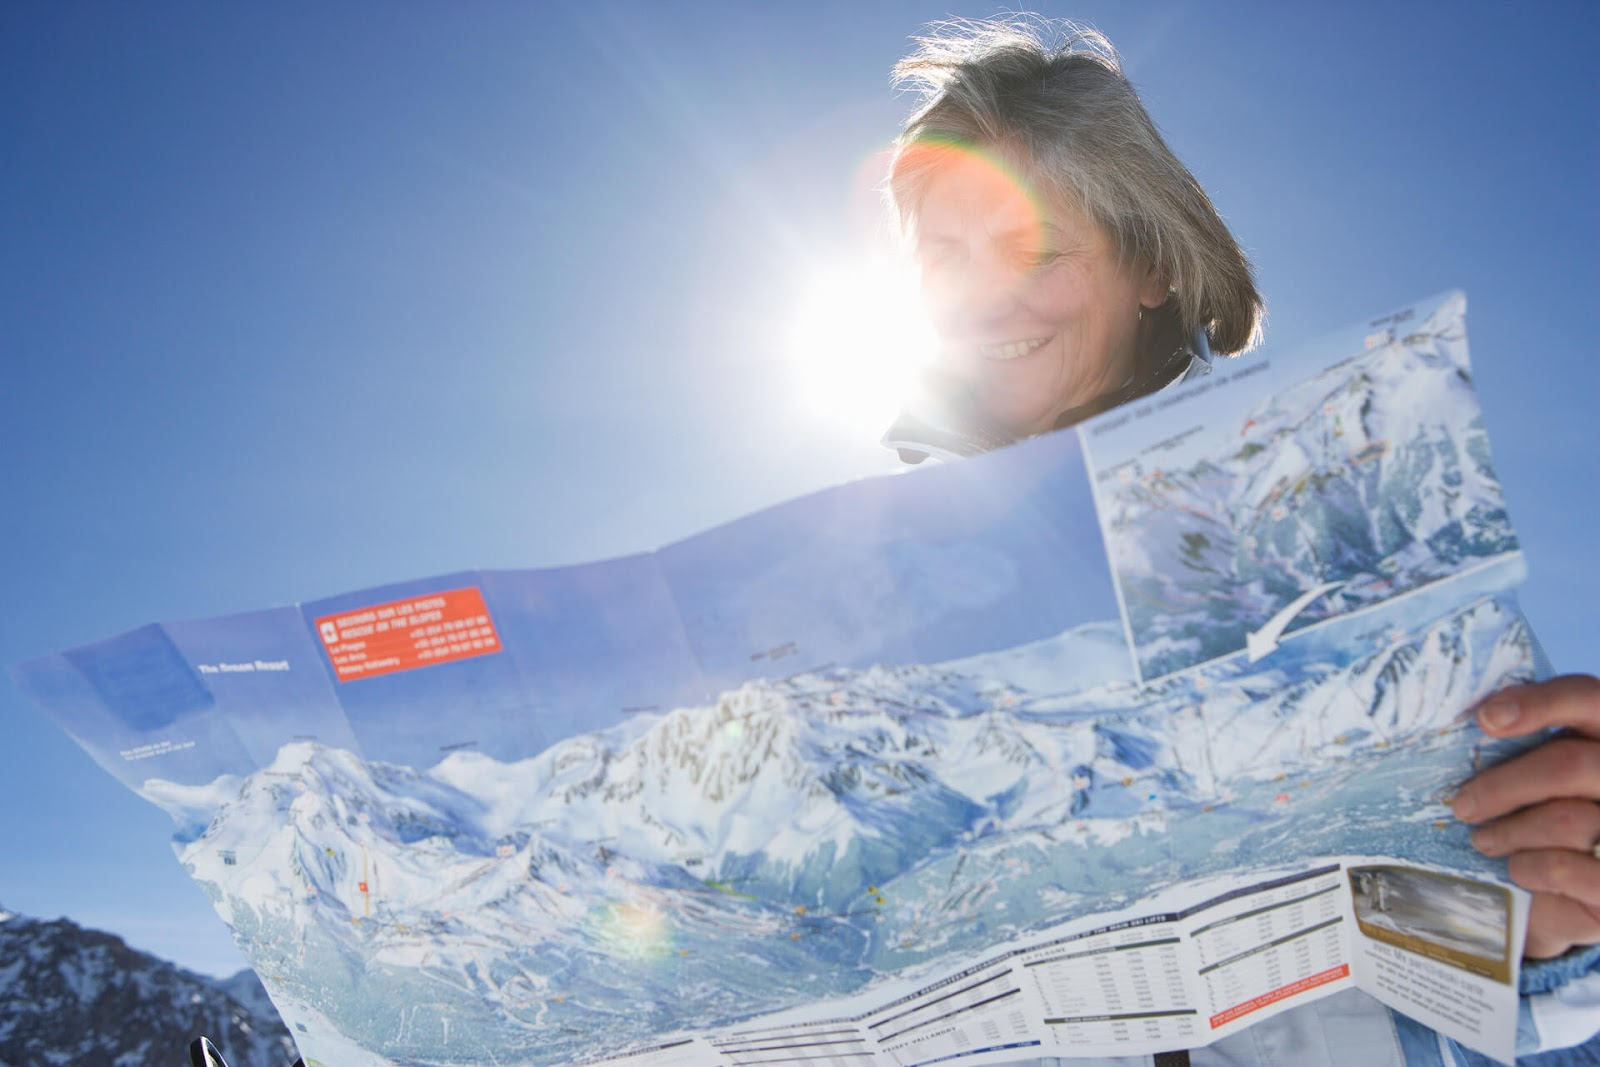 Woman looking at a trail map